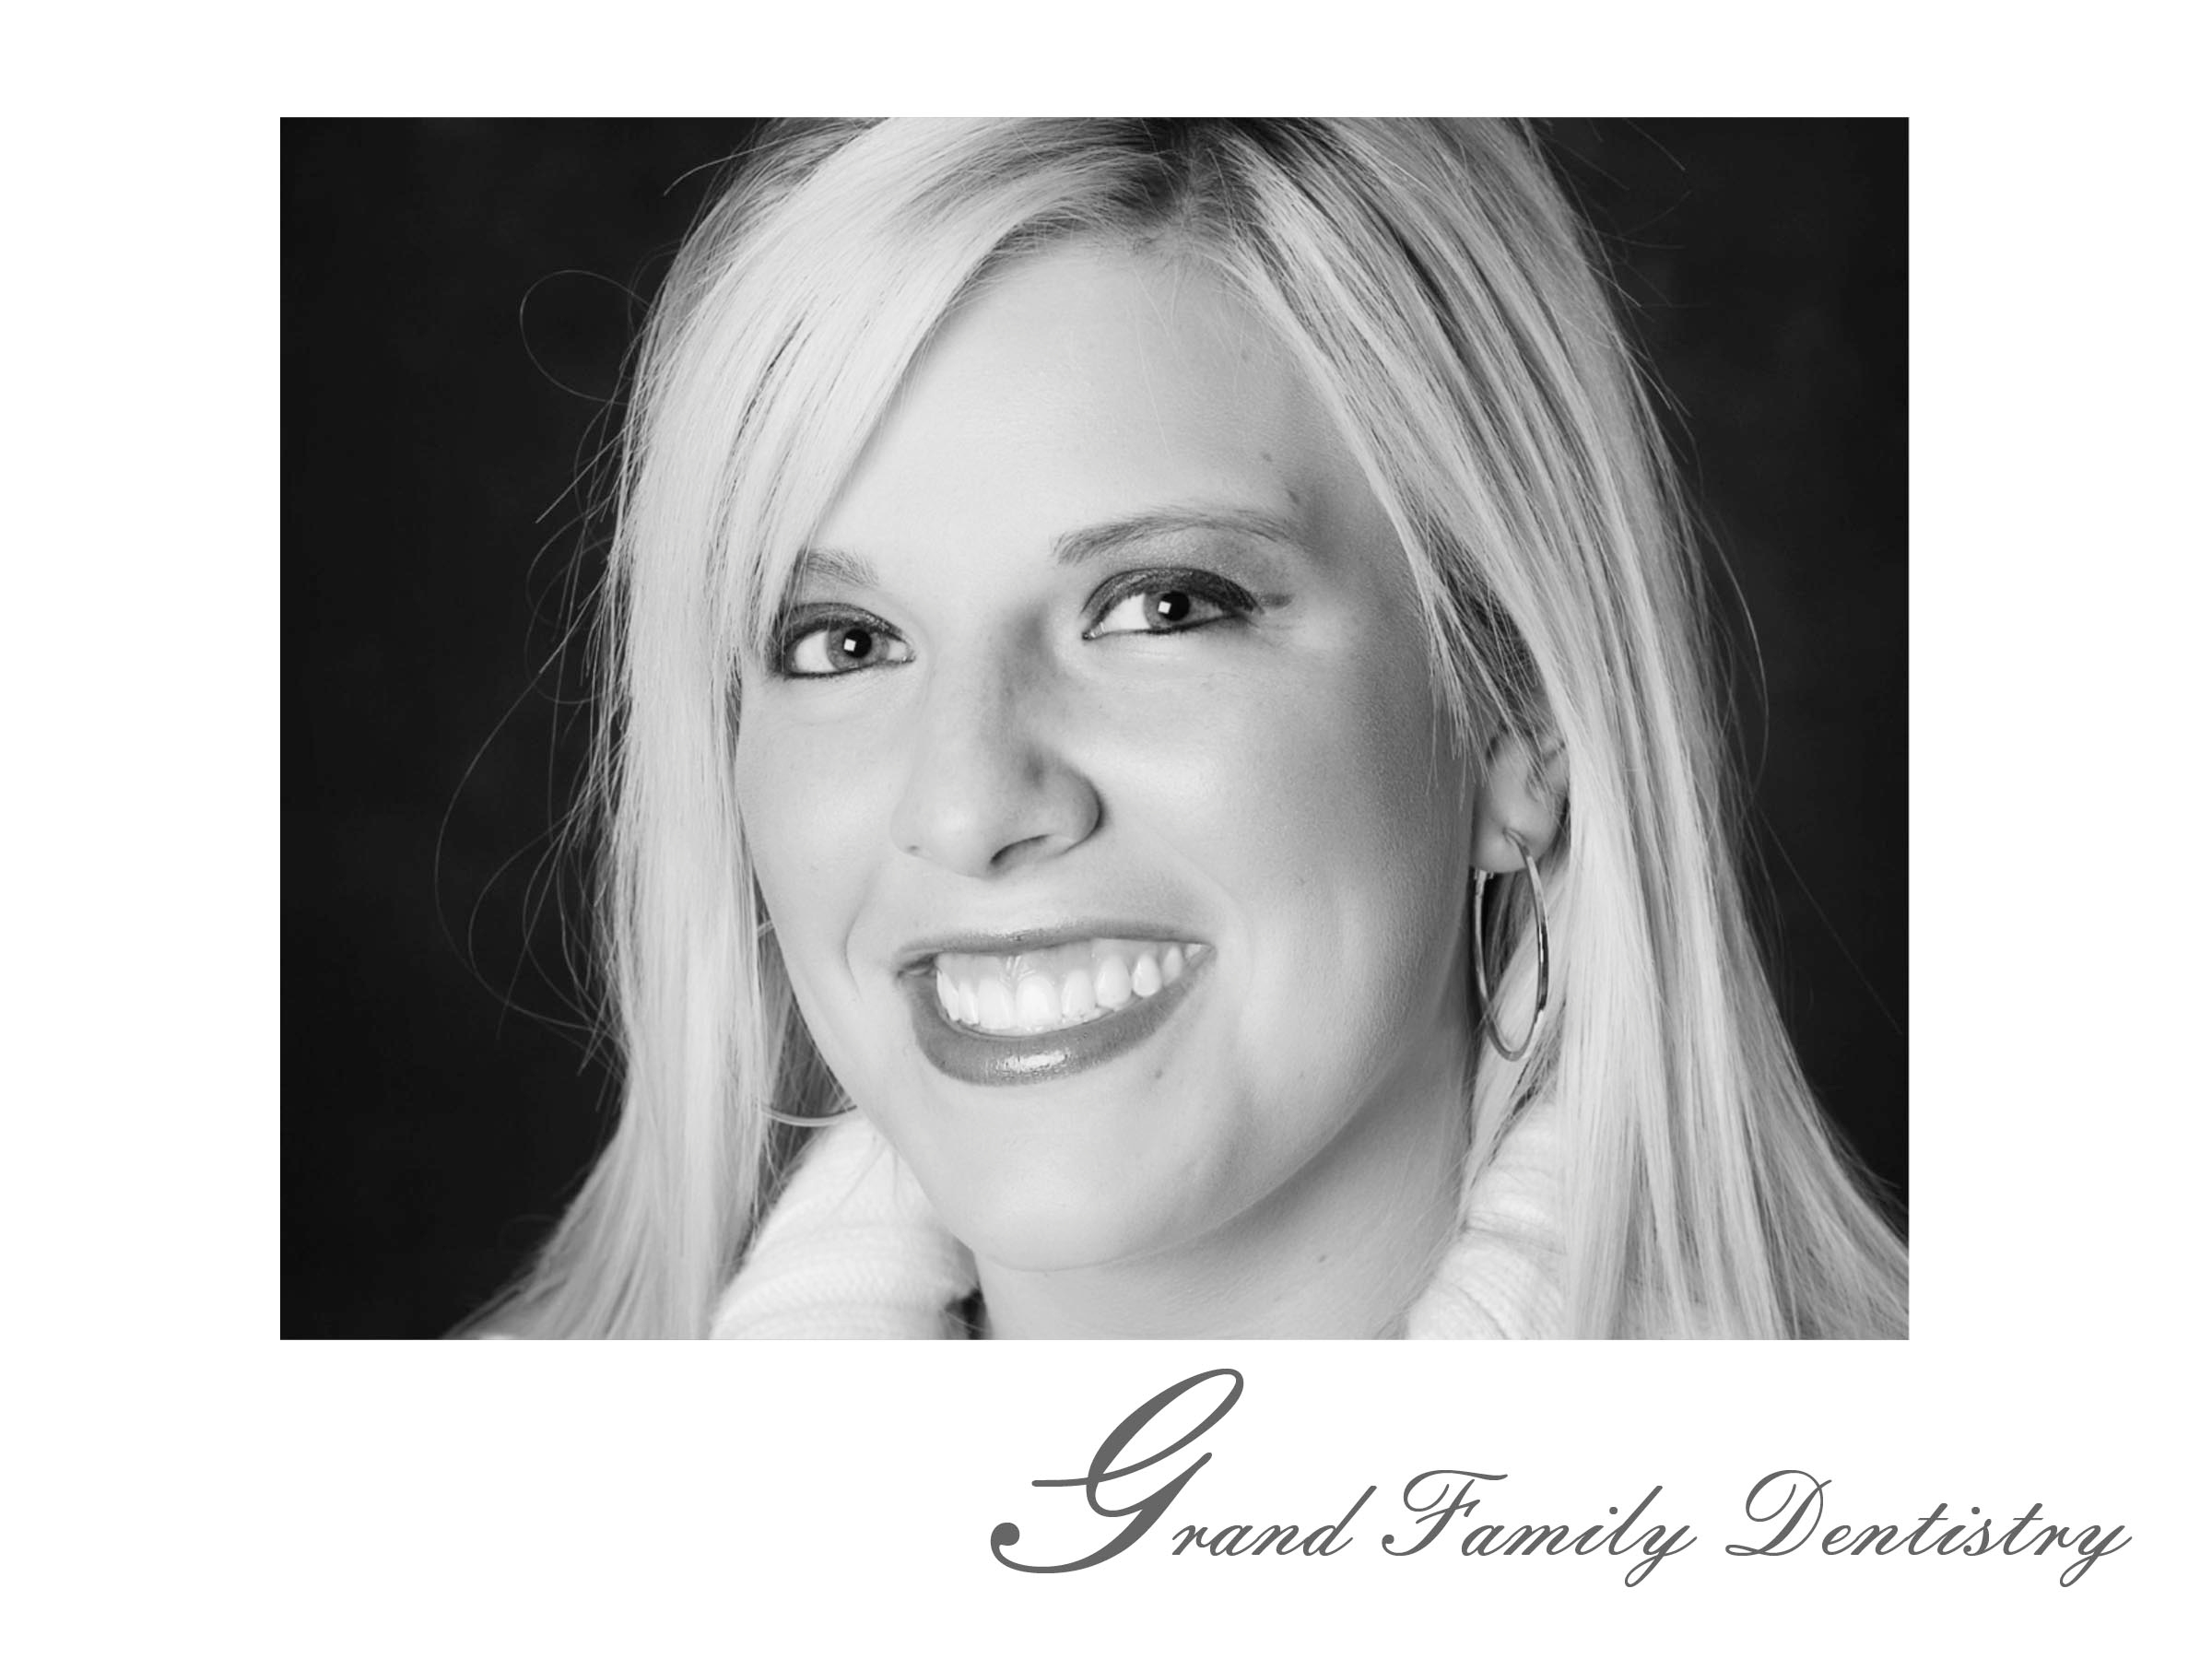 Grand Family Dentistry image 1